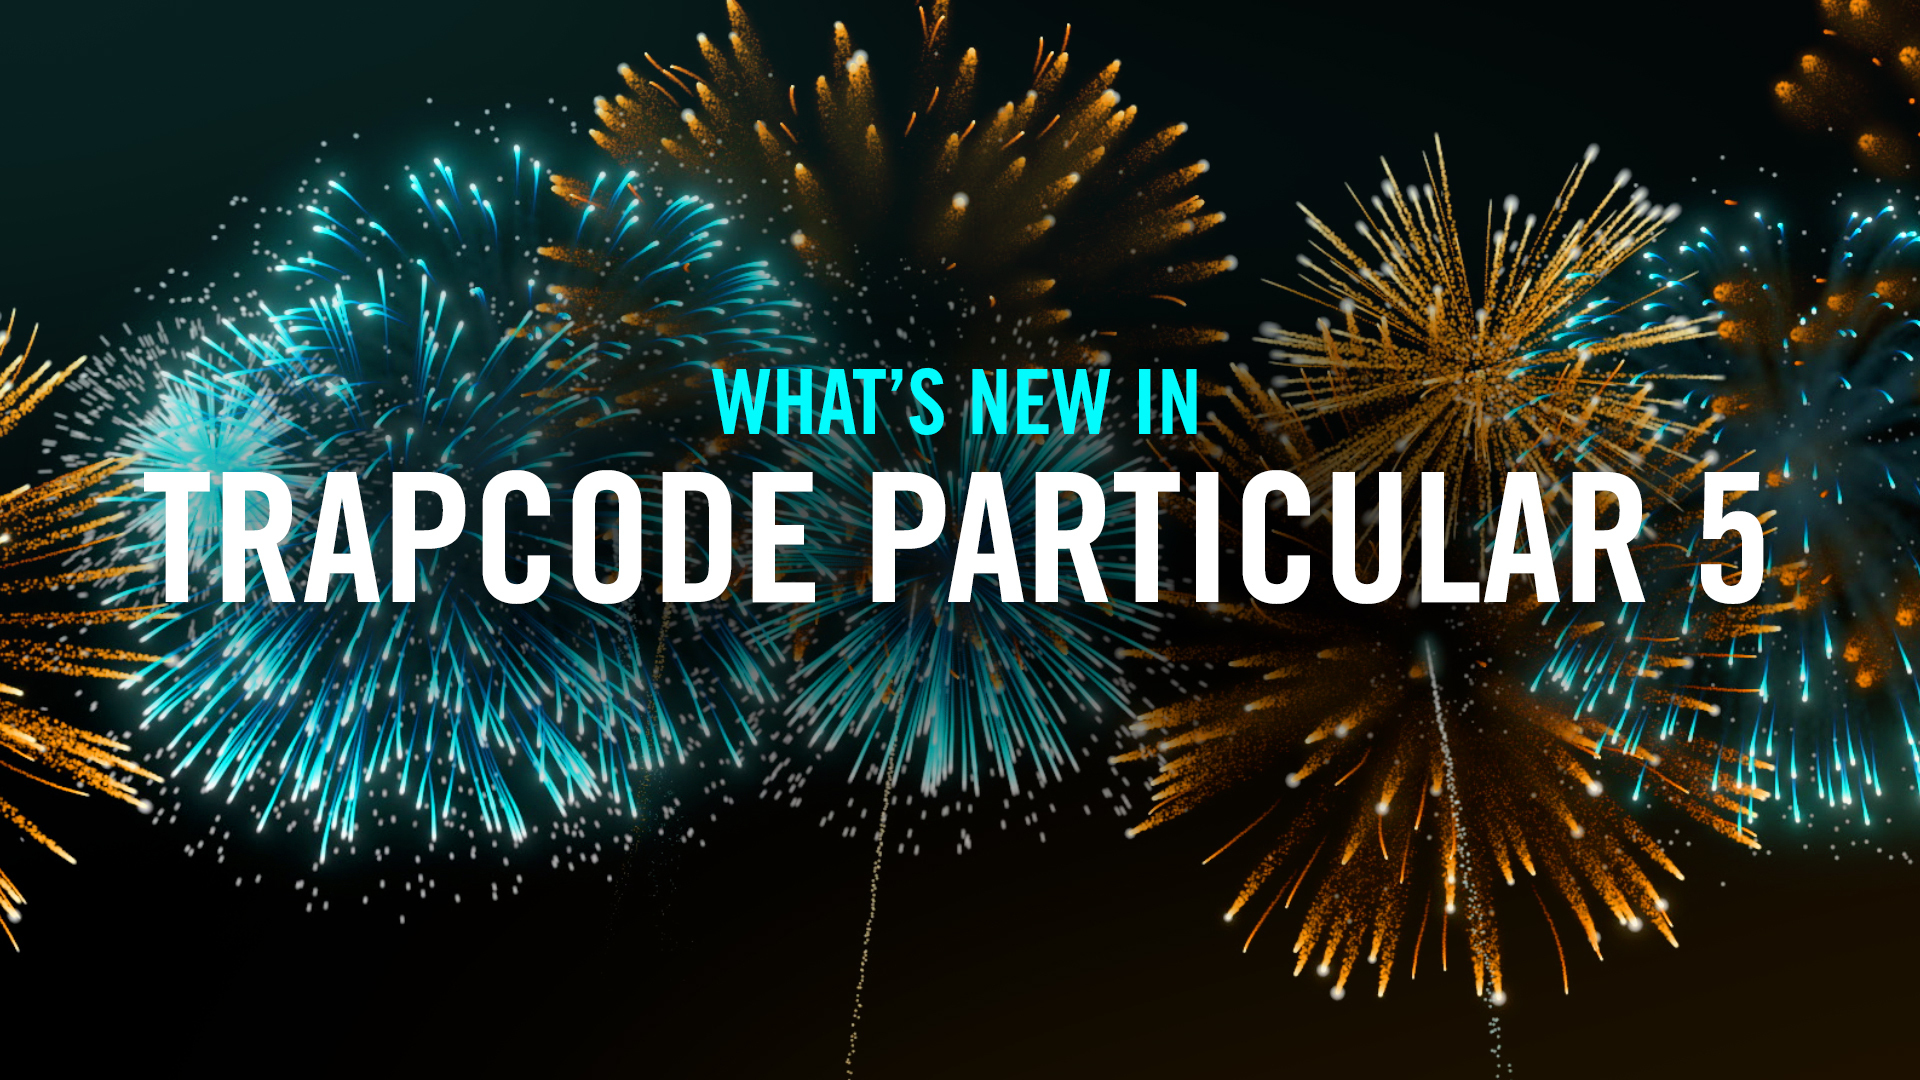 What's New with Trapcode Particular 5